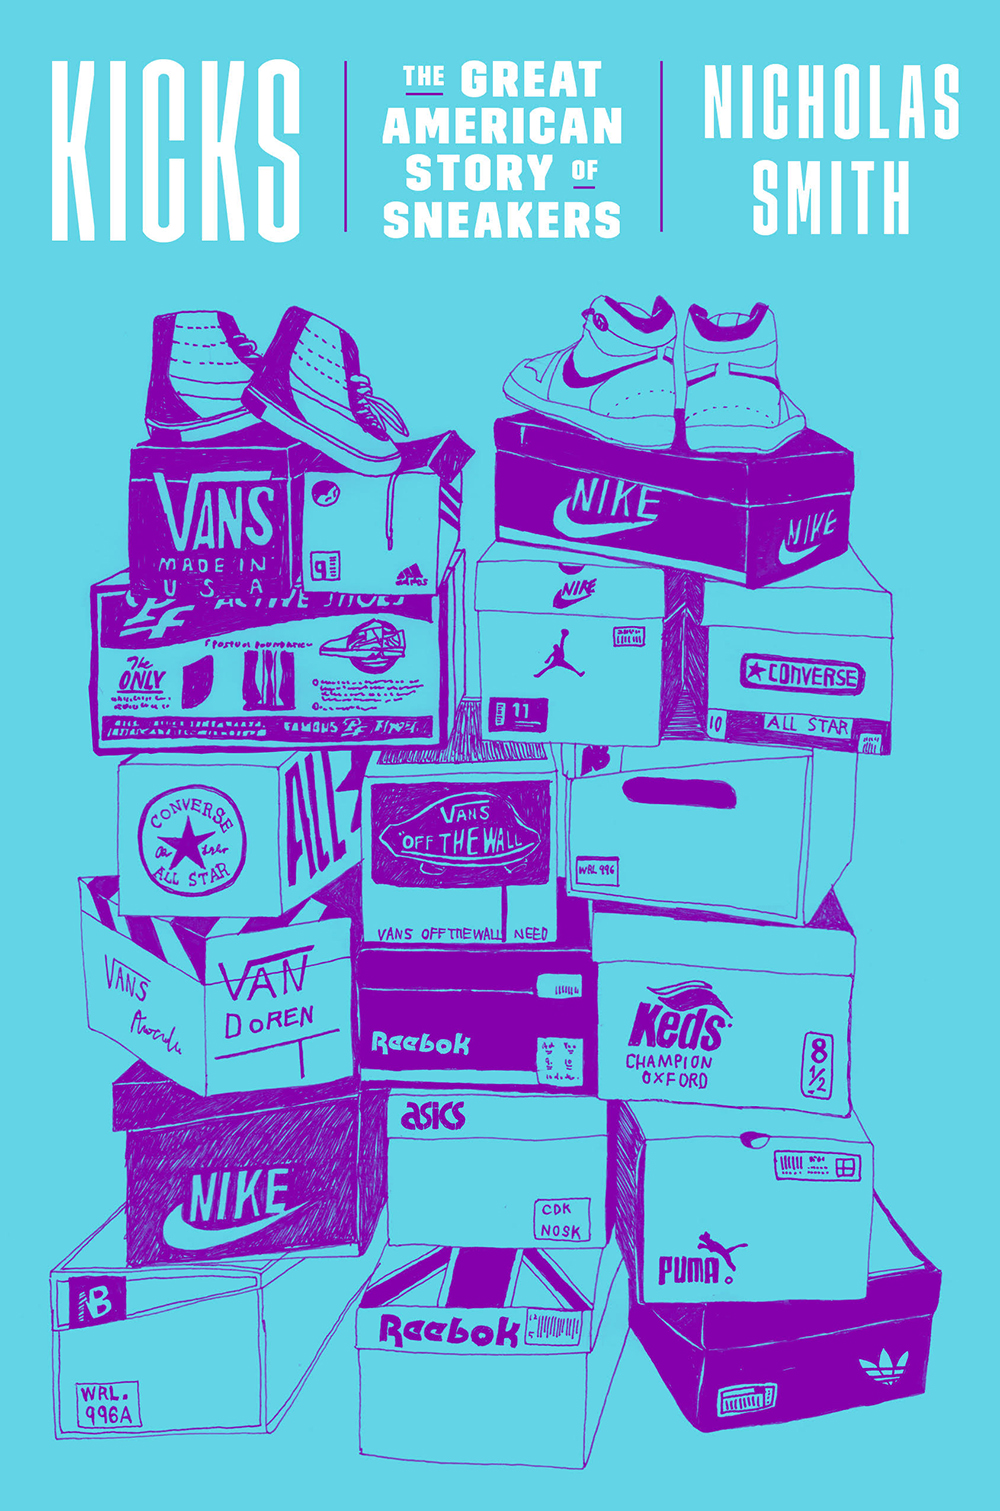 """Nicholas Smith, """"Kicks: The Great American Story of Sneakers"""" (Crown, 2018)."""